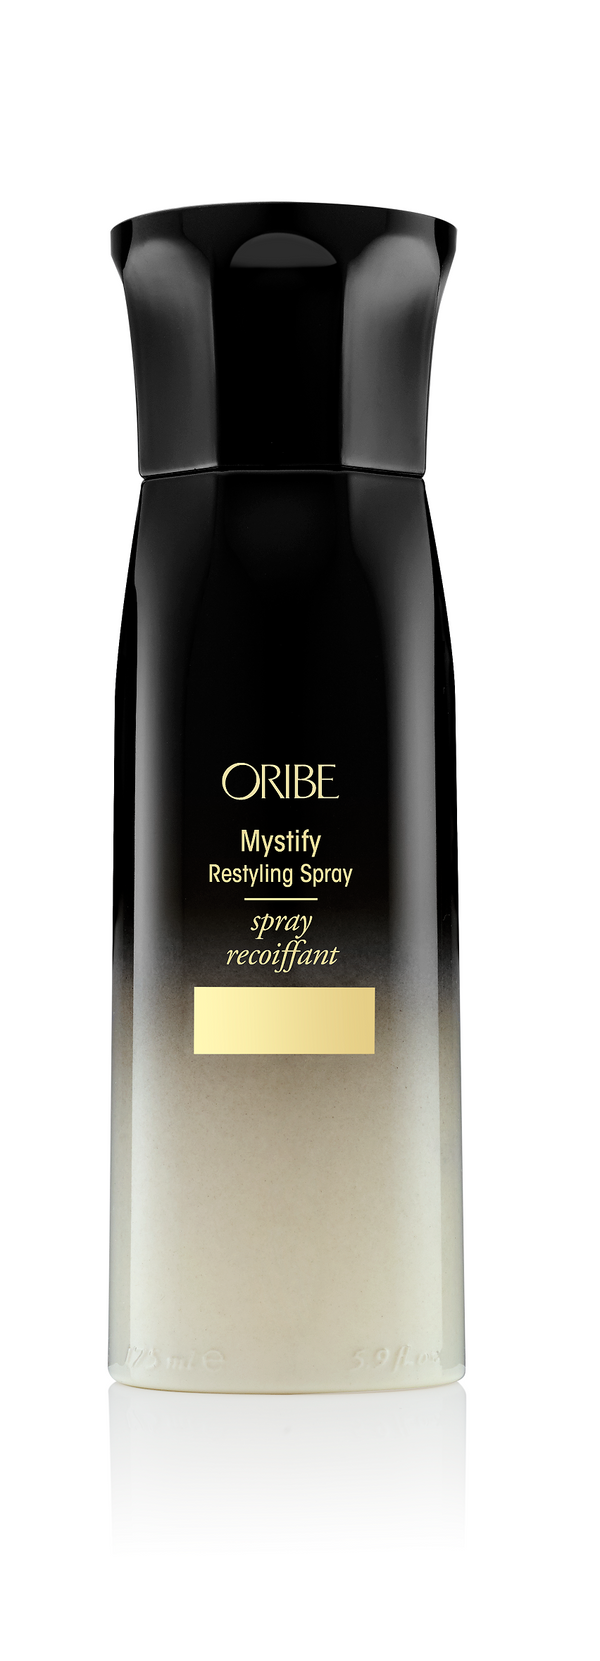 ORIBE Mystify re-styling spray